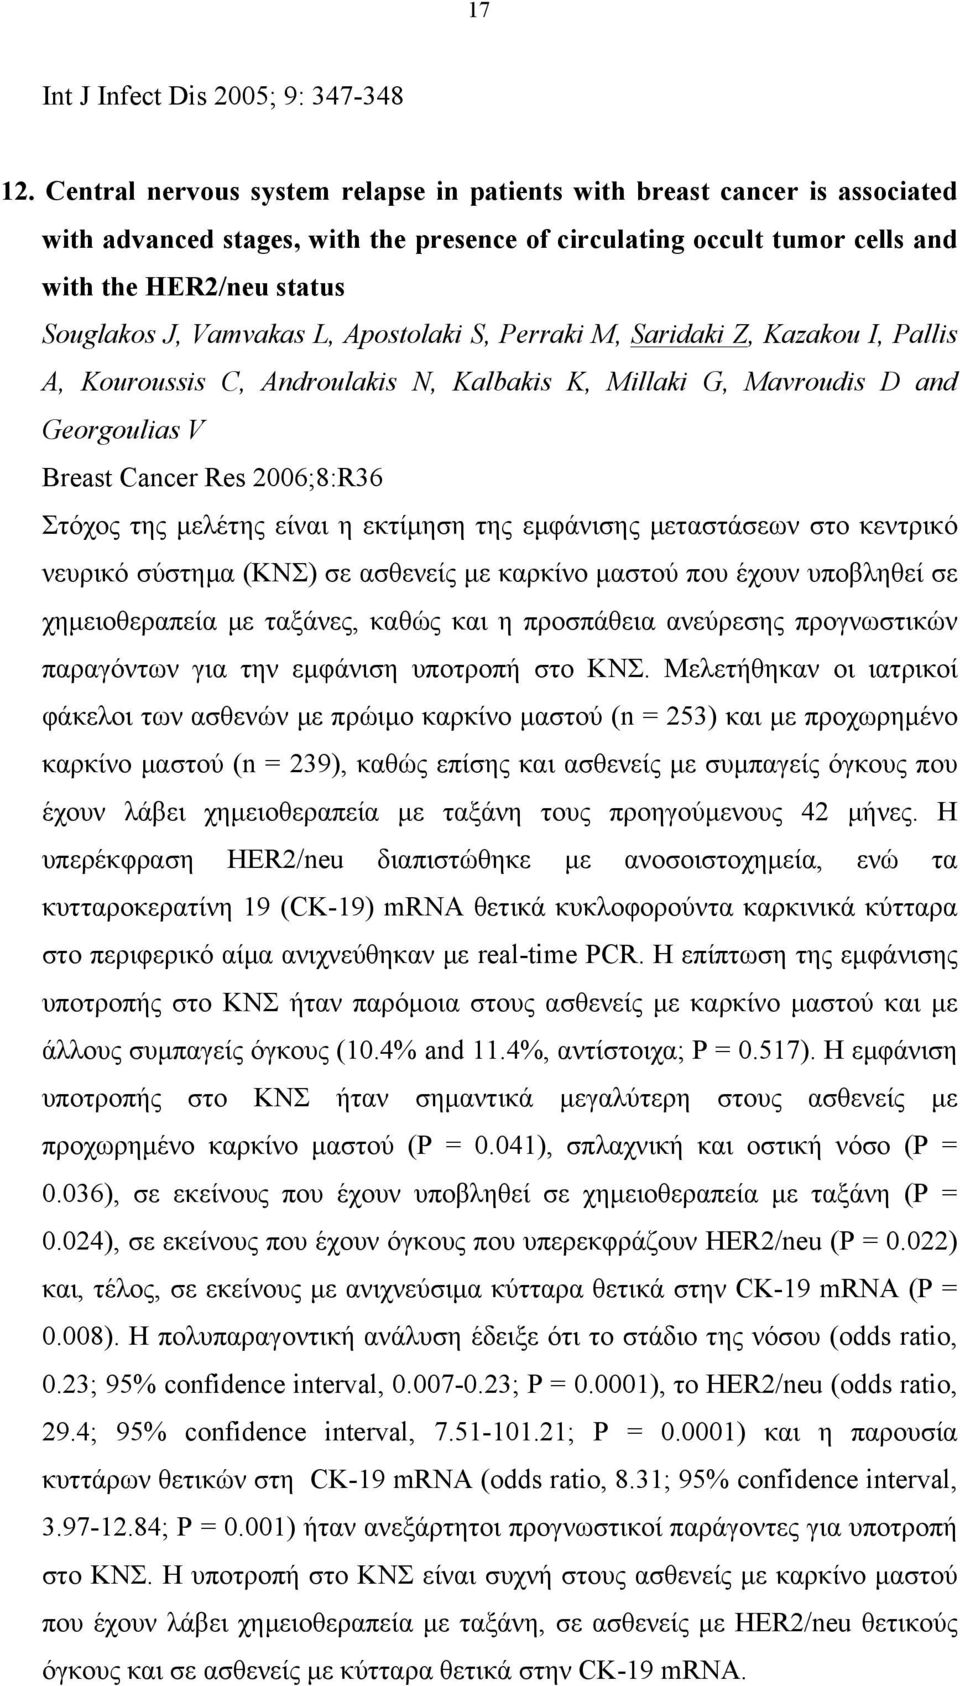 Vamvakas L, Apostolaki S, Perraki M, Saridaki Z, Kazakou I, Pallis A, Kouroussis C, Androulakis N, Kalbakis K, Millaki G, Mavroudis D and Georgoulias V Breast Cancer Res 2006;8:R36 Στόχος της µελέτης